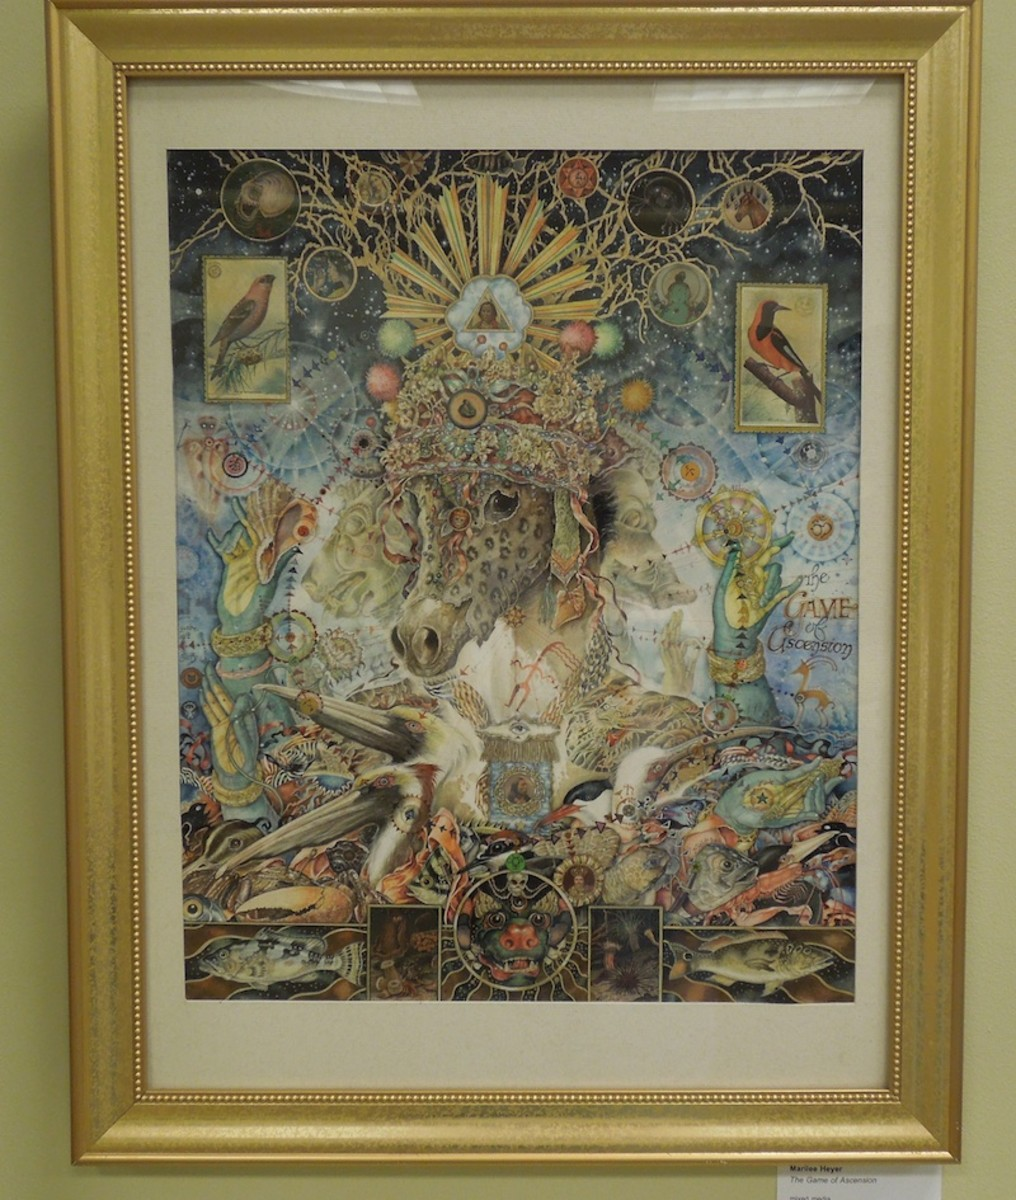 """Selected for Honorable Mention by Sylvia White, Marilee Heyer's """"Game of Ascension"""""""